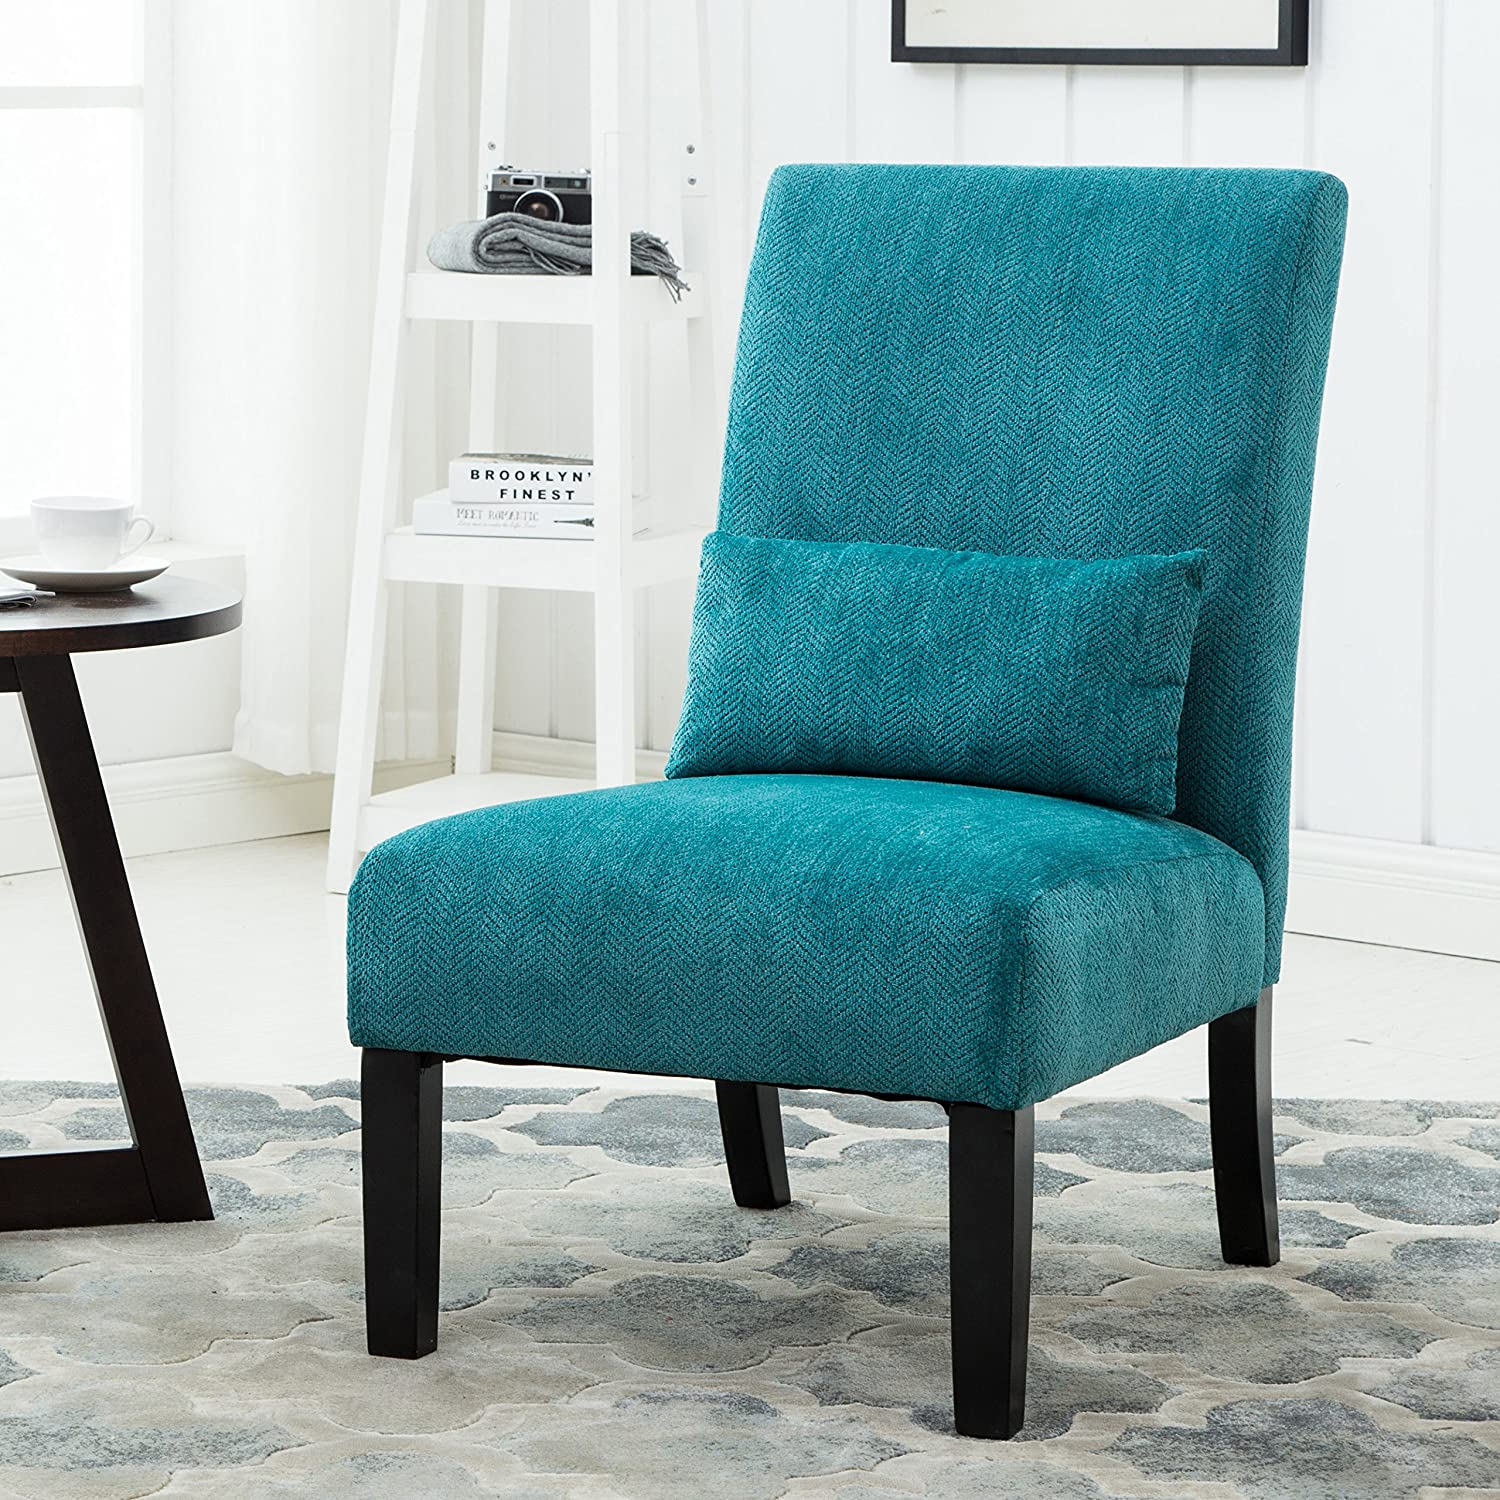 Contemporary fabric chairs - Amazon Com Roundhill Furniture Pisano Teal Blue Fabric Armless Contemporary Accent Chair With Kidney Pillow Single Kitchen Dining